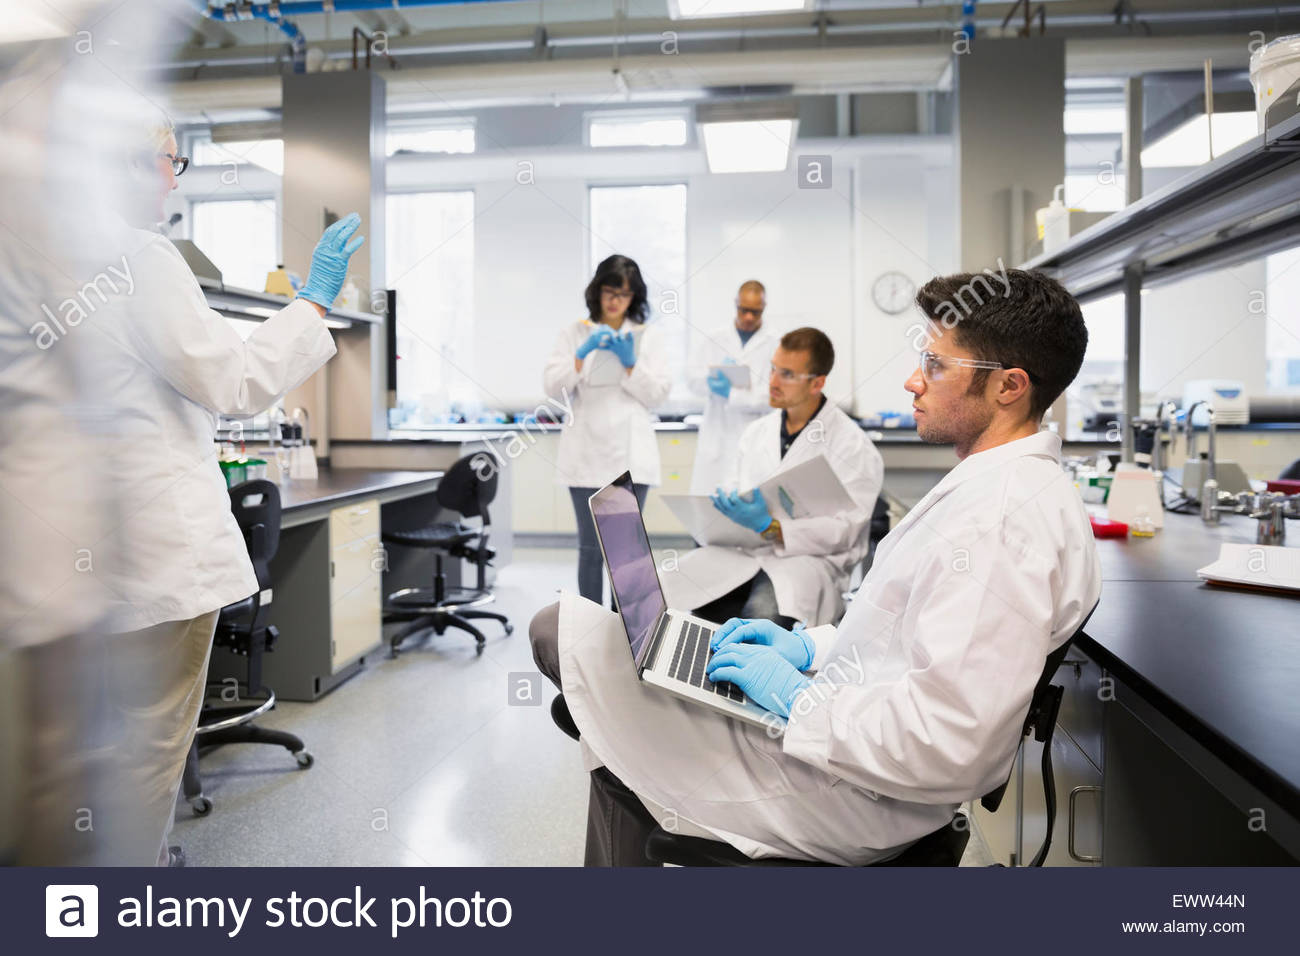 Science students taking notes in laboratory - Stock Image